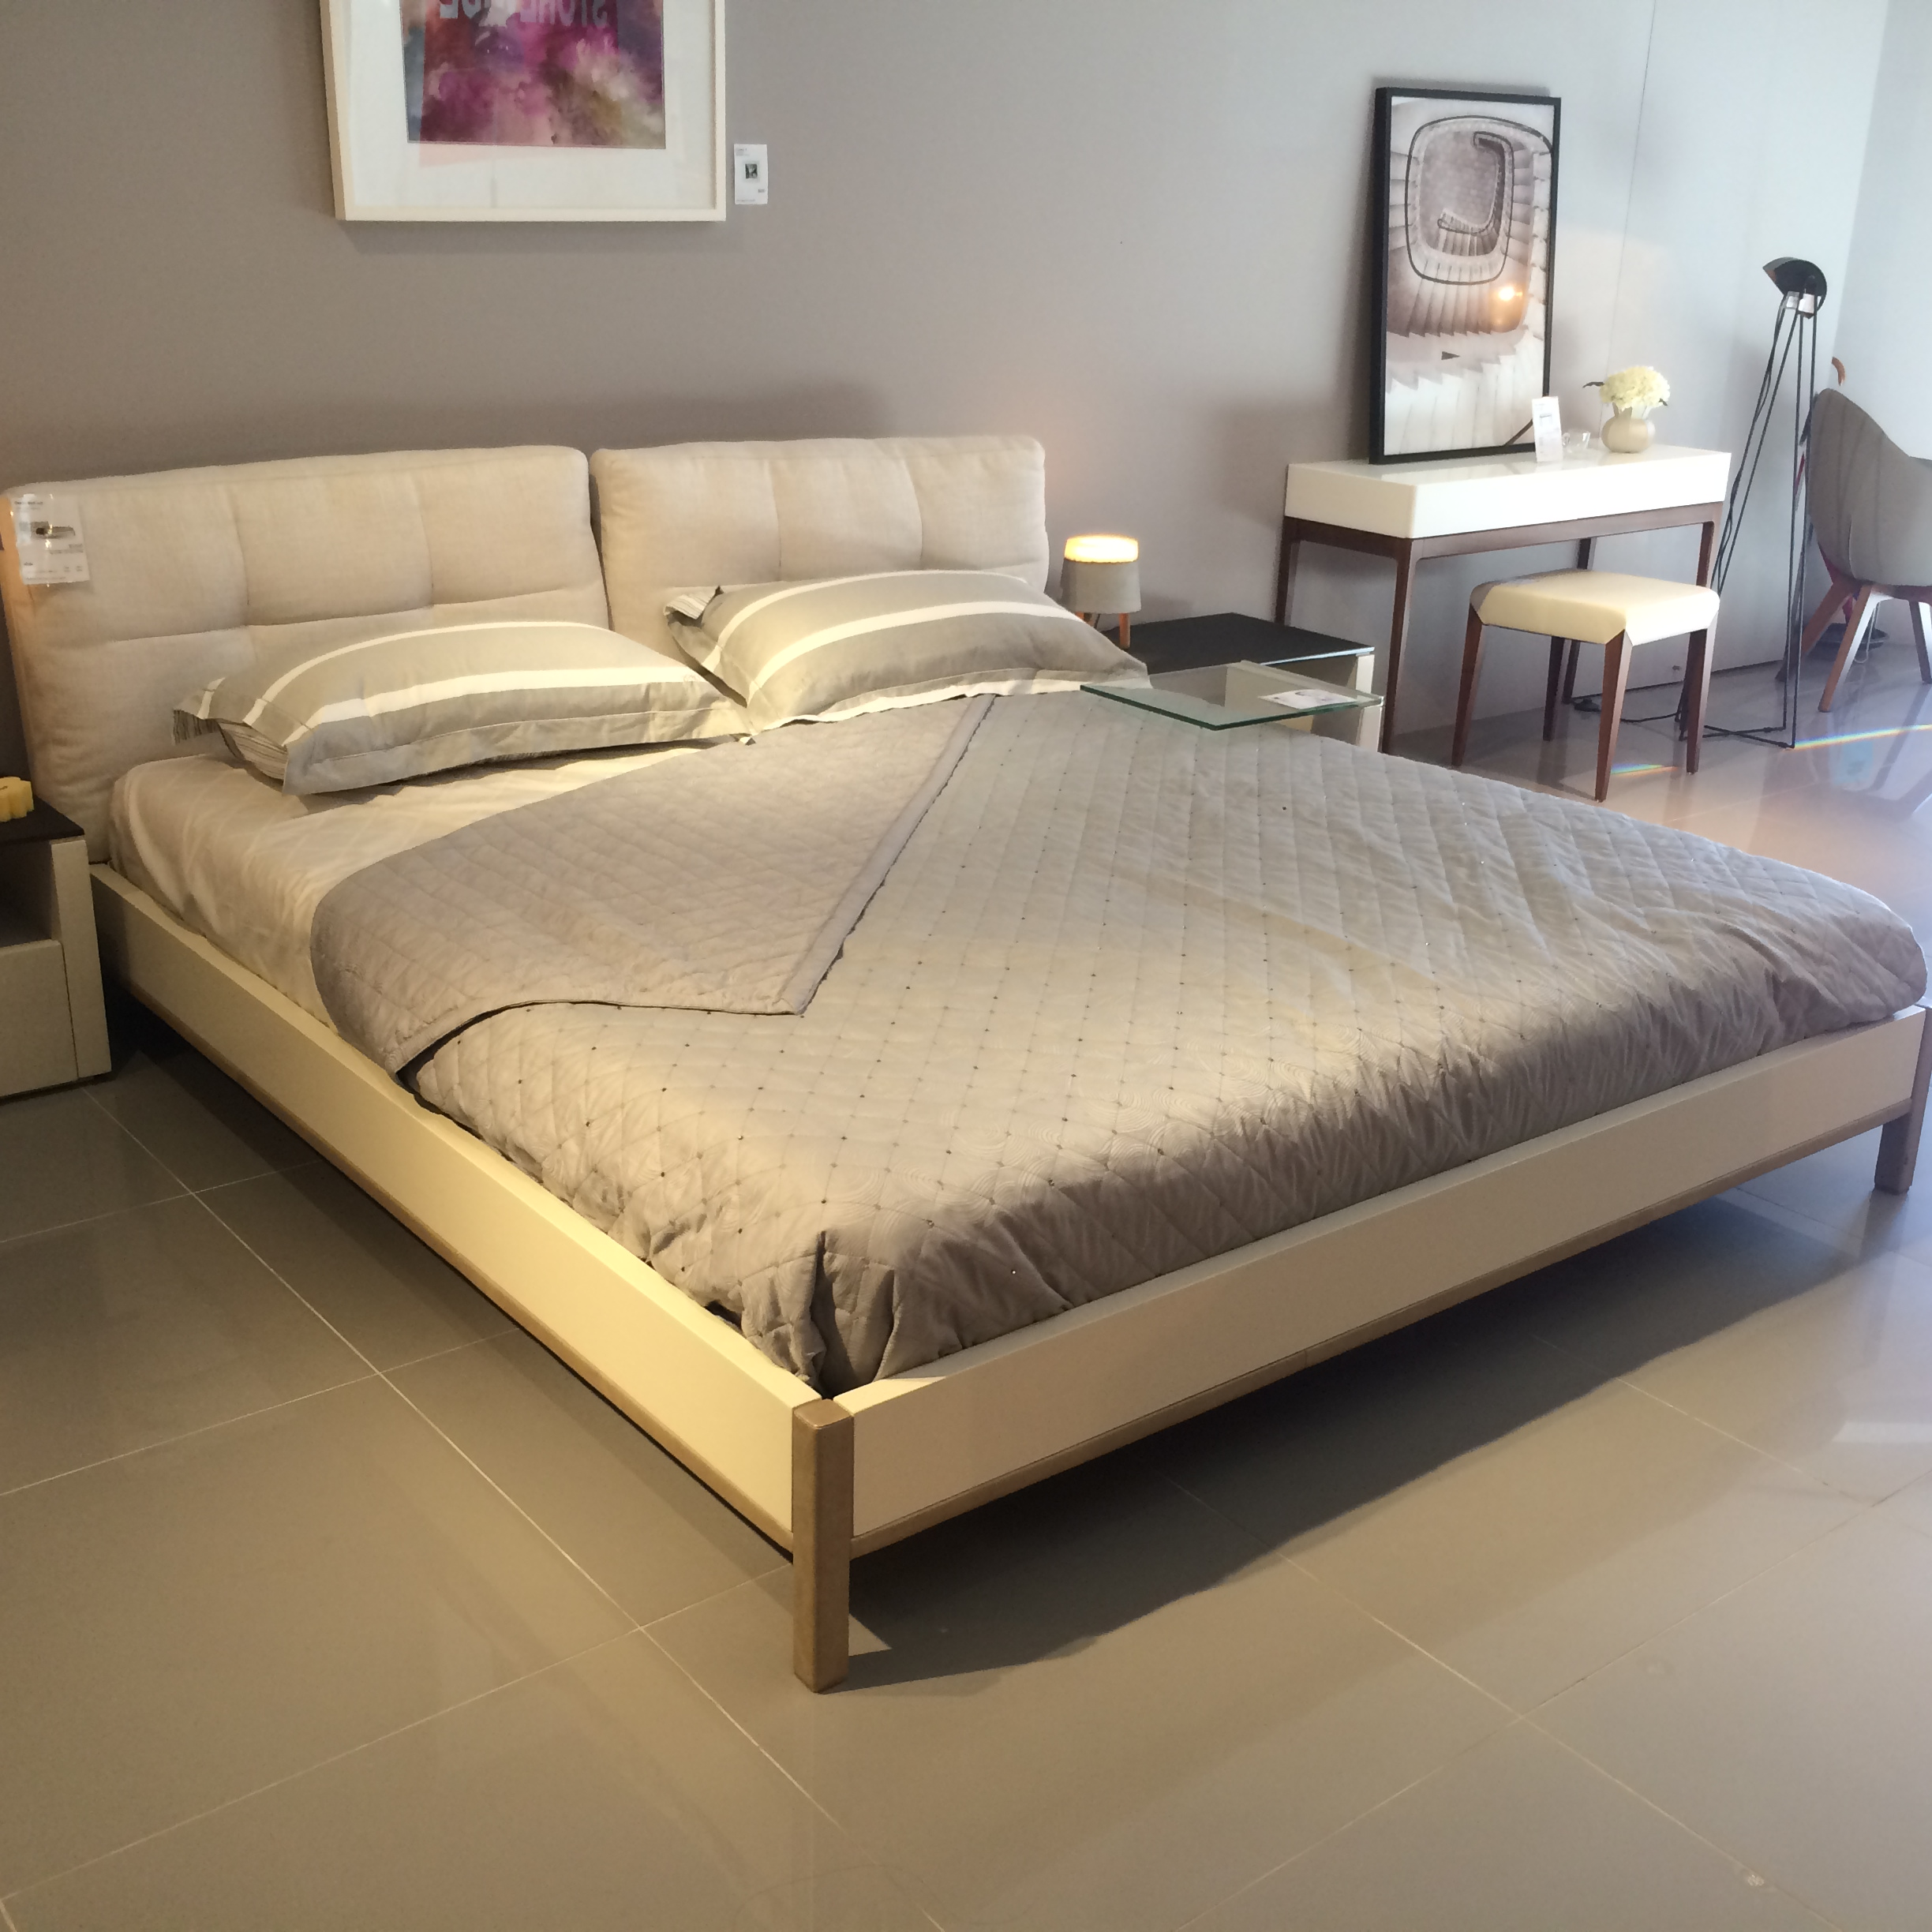 Double Bed Mattress Sale Adelaide